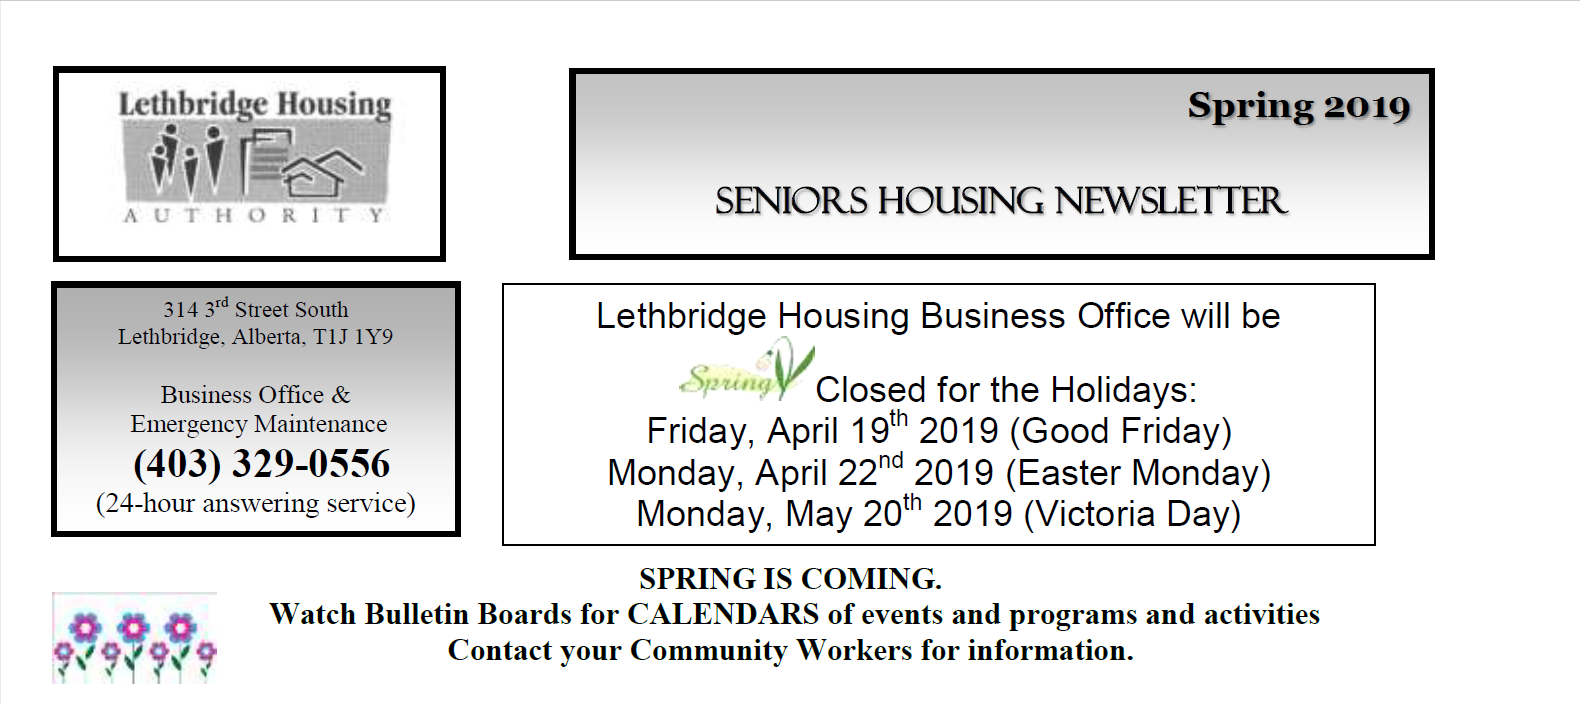 Seniors Self-Contained Spring 2019 Newsletter